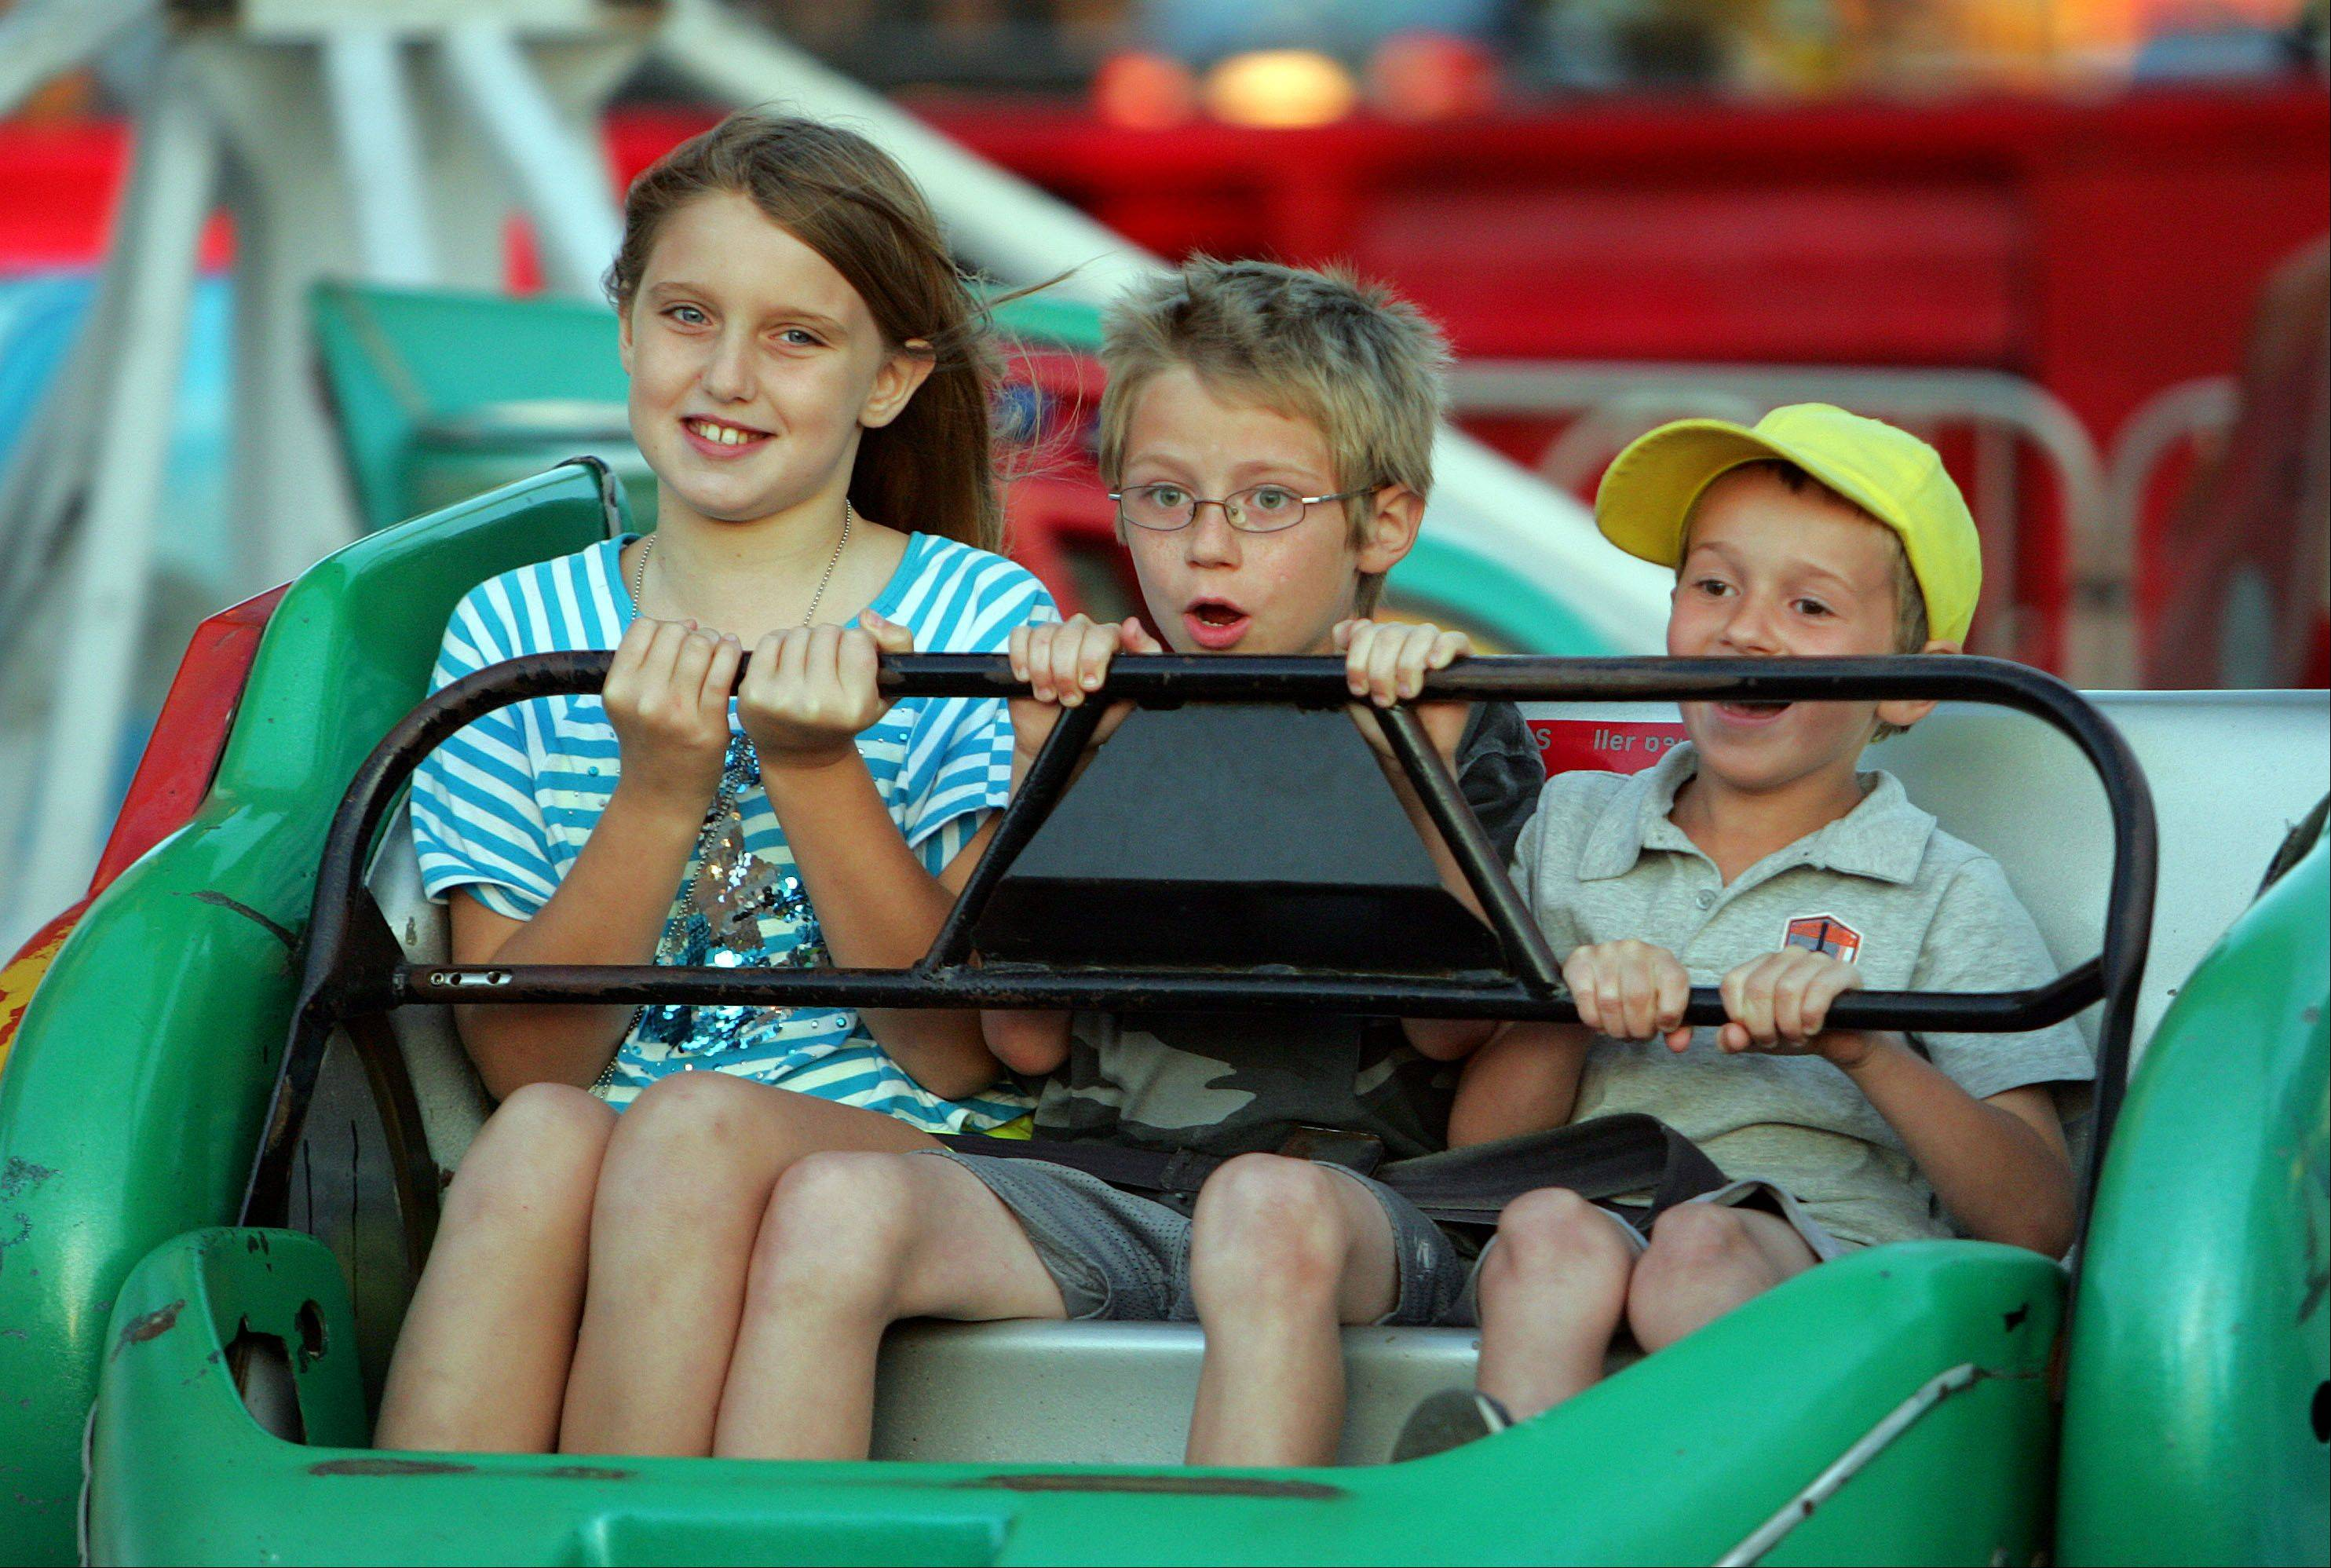 From left, Amelia Cox and Logan and Liam Micheletto, all of Lakemoor, ride a carnival ride during last year's Lakemoor Fest.